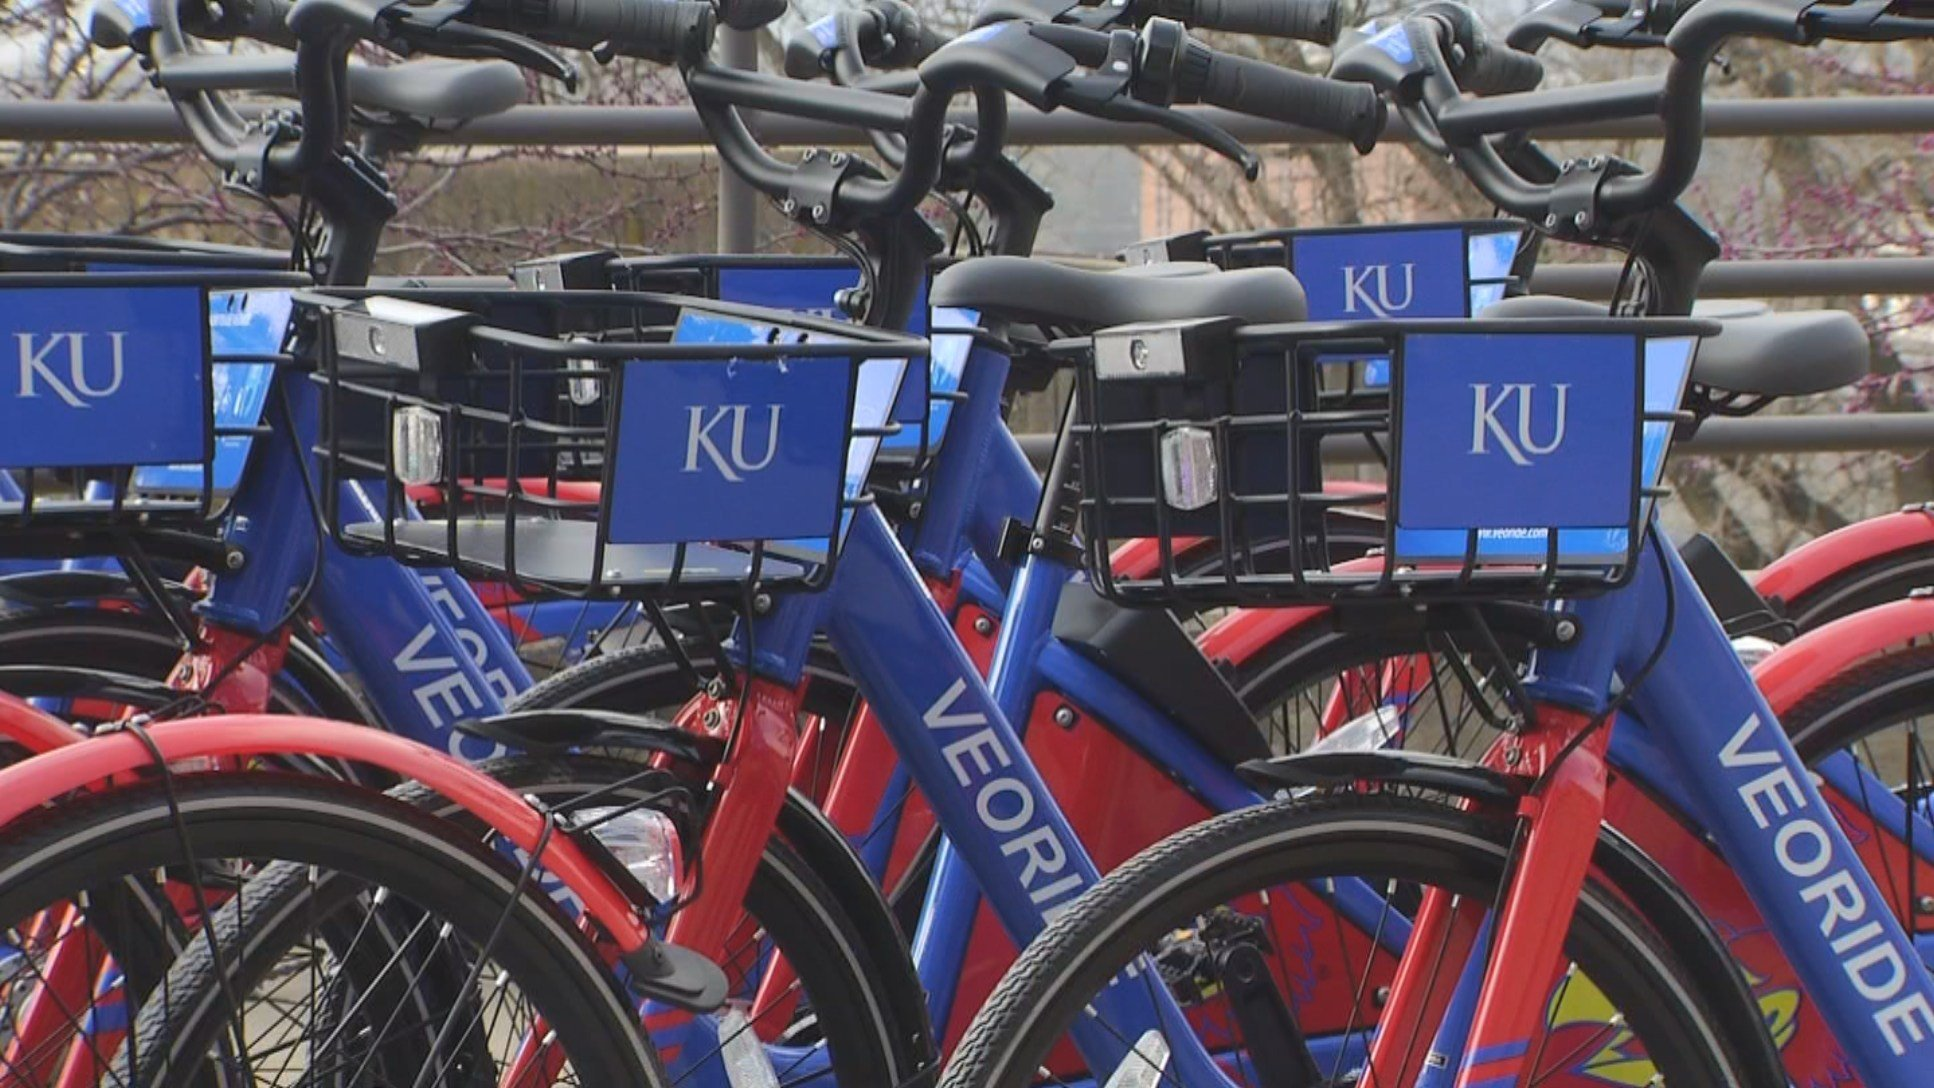 A new bike share program is putting KU on the map. The VeoRide bikes are the first dock-less bicycles in Kansas. (KCTV5)